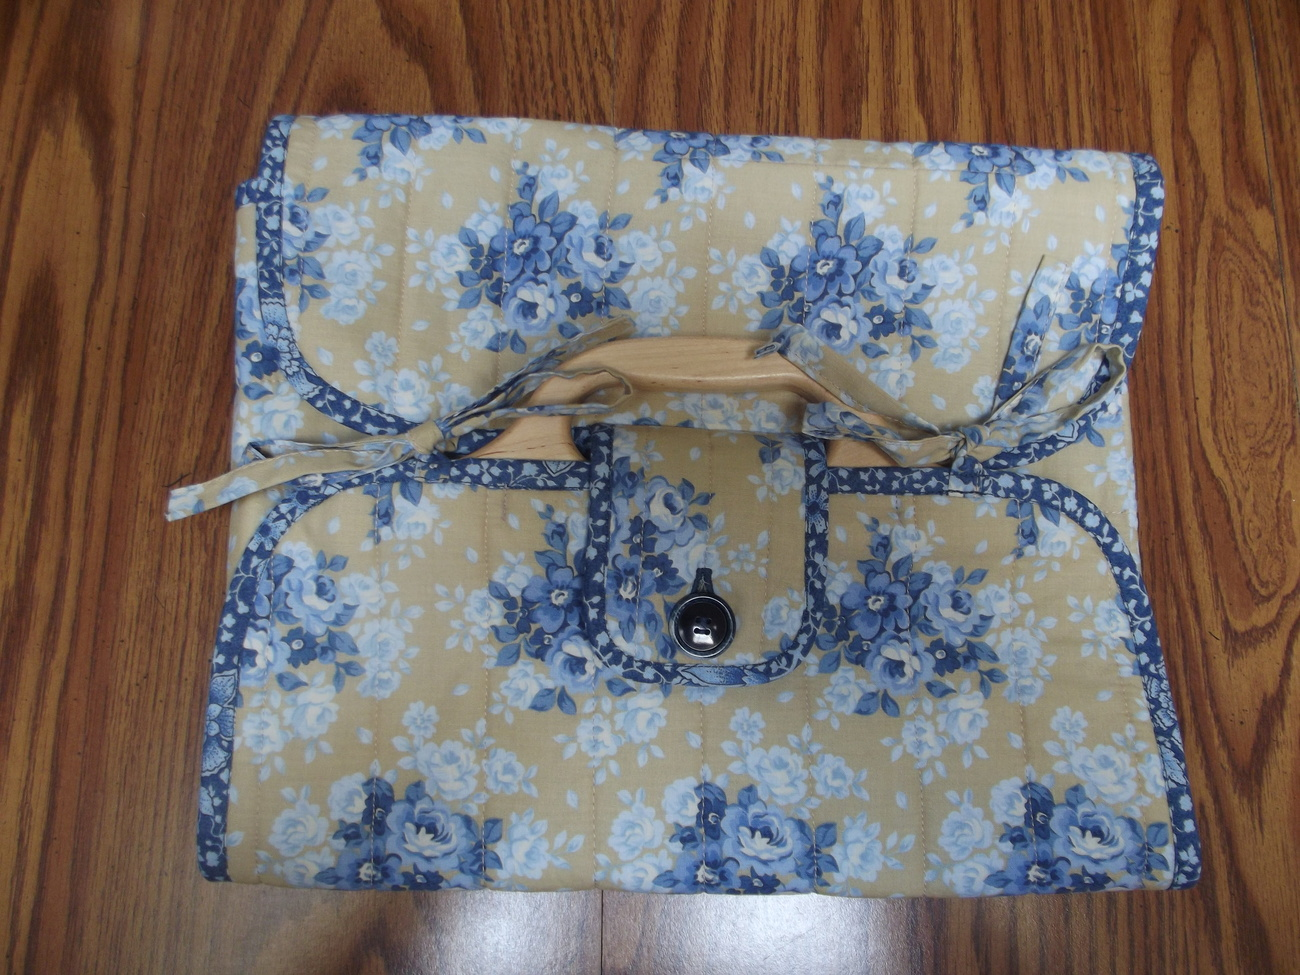 Blue_flower_casserole_carrier_wo_dish